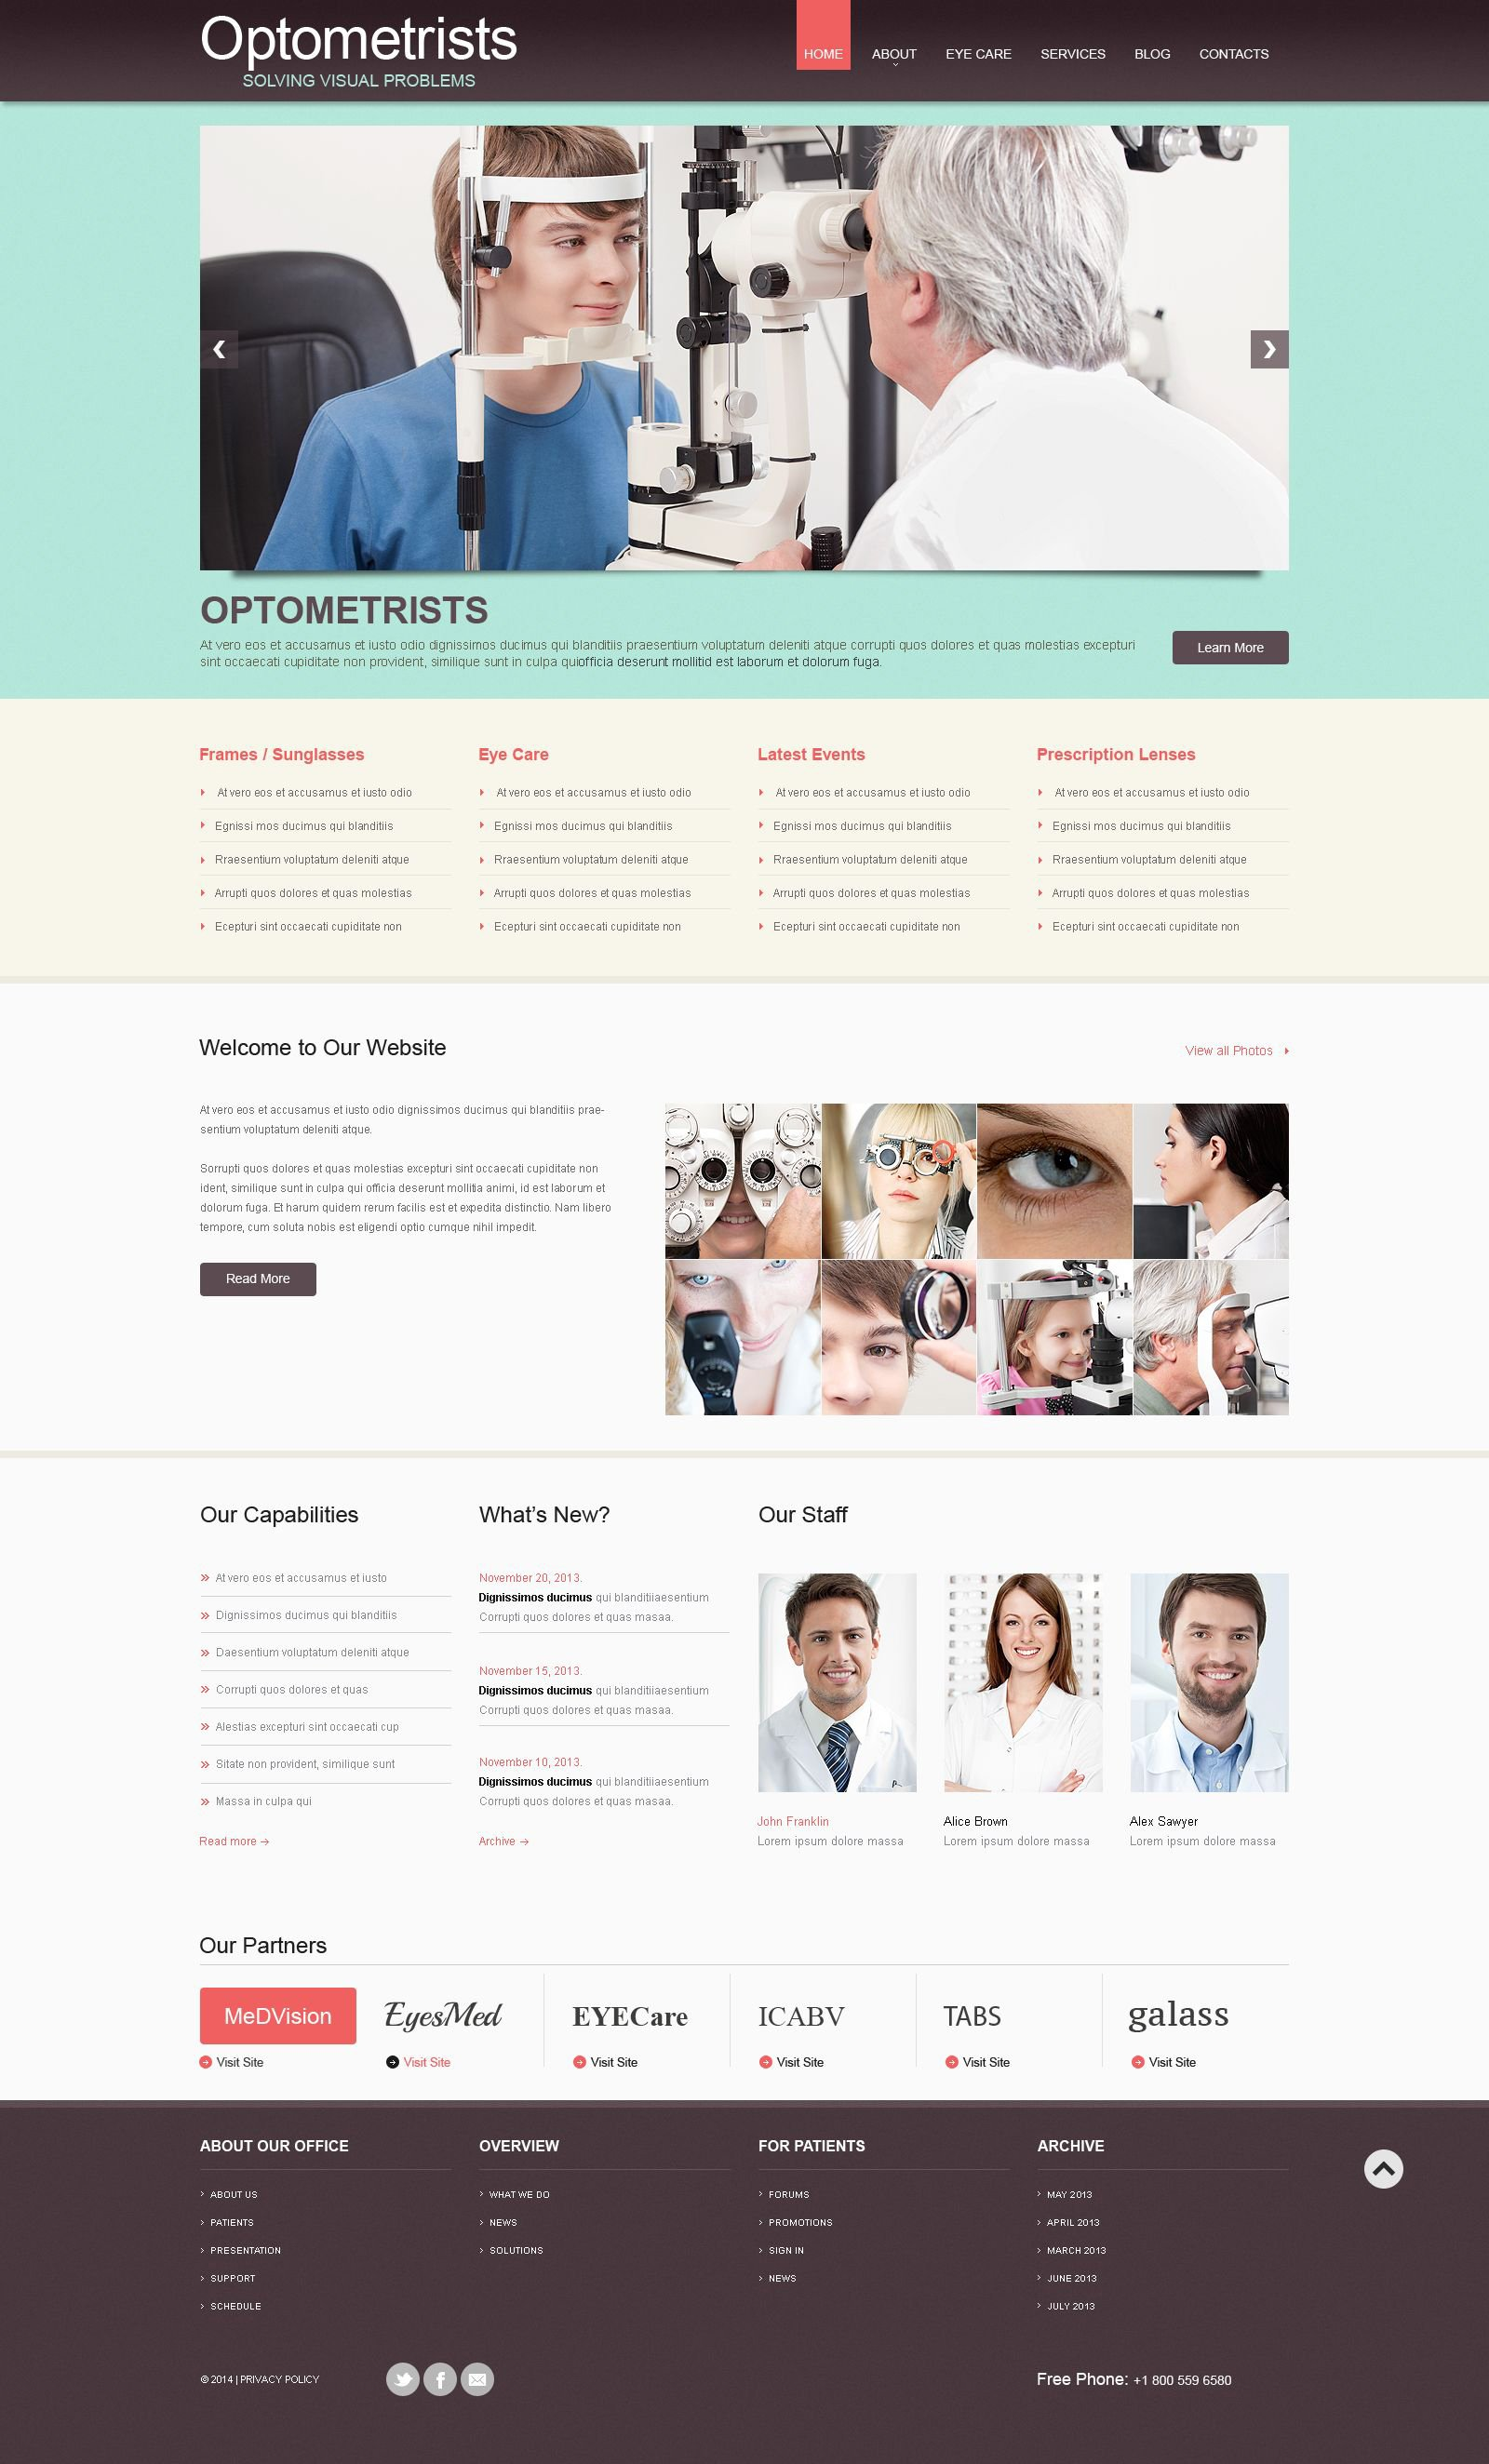 The Optometrists Optometrist WordPress Design 53596, one of the best WordPress themes of its kind (medical, most popular), also known as optometrists optometrist WordPress template, optometric WordPress template, crystal WordPress template, eyes WordPress template, sight WordPress template, vision WordPress template, medicine center clinic WordPress template, eye care WordPress template, lenses WordPress template, glasses WordPress template, laser WordPress template, correction WordPress template, ophthalmology WordPress template, disease WordPress template, surgery WordPress template, glaucoma WordPress template, oculoplastic surgery WordPress template, cataract and related with optometrists optometrist, optometric, crystal, eyes, sight, vision, medicine center clinic, eye care, lenses, glasses, laser, correction, ophthalmology, disease, surgery, glaucoma, oculoplastic surgery, cataract, etc.